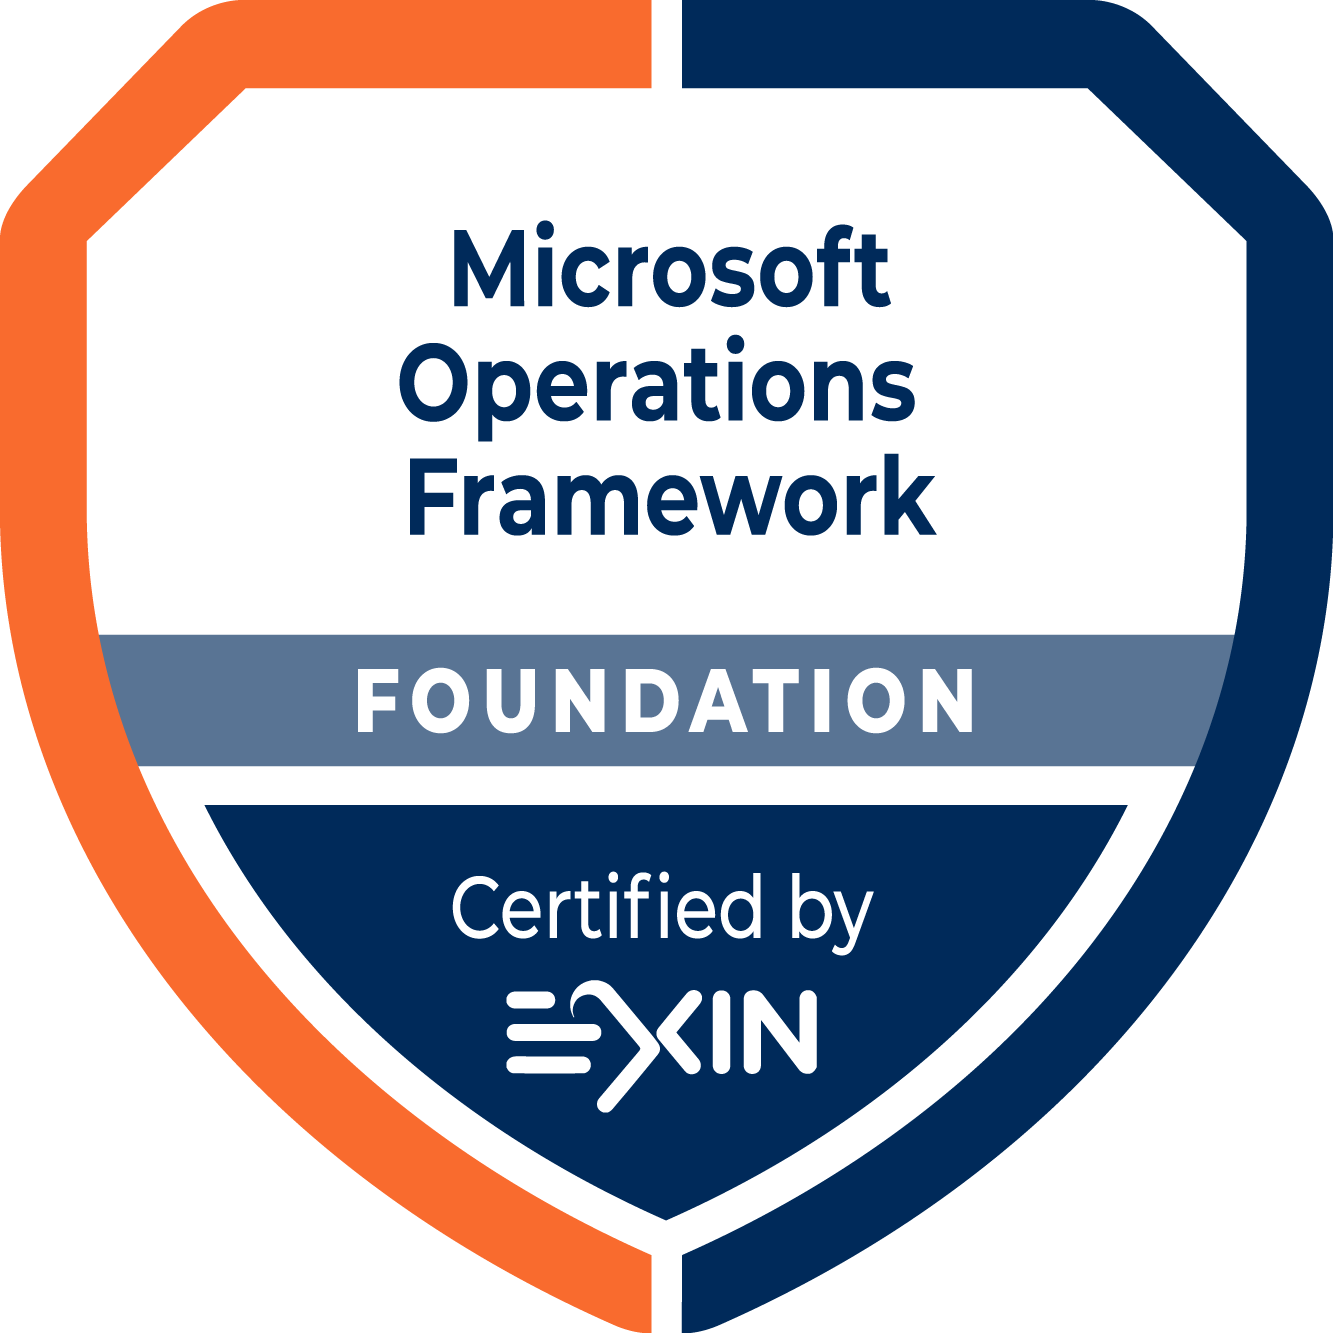 Microsoft Operations Framework Foundation